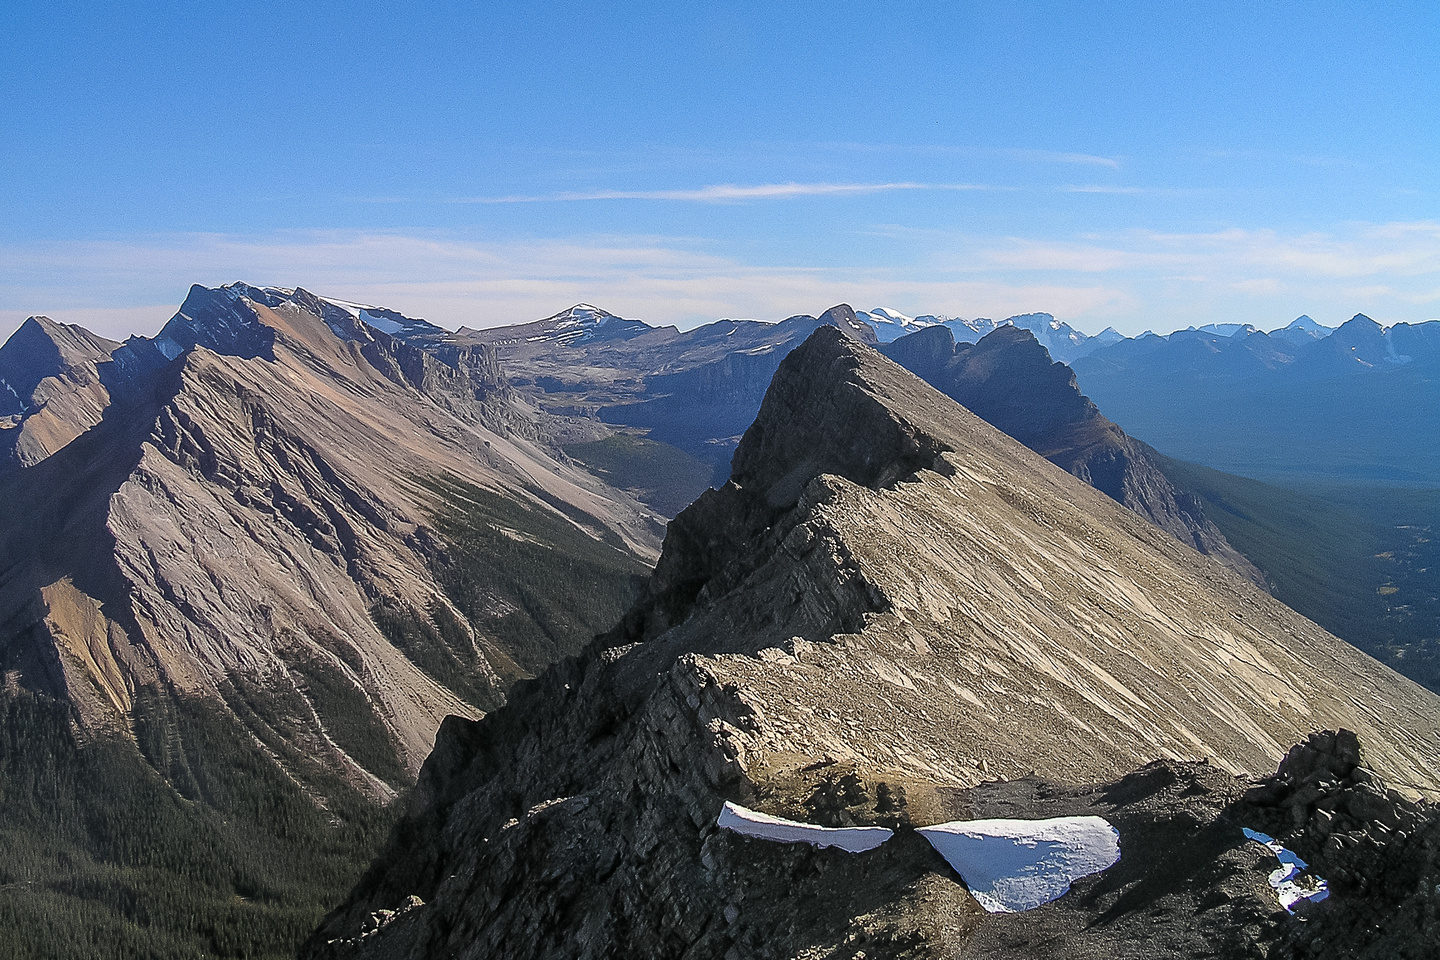 Looking back along Anthozoan's summit ridge to the true (south) summit from the north one.